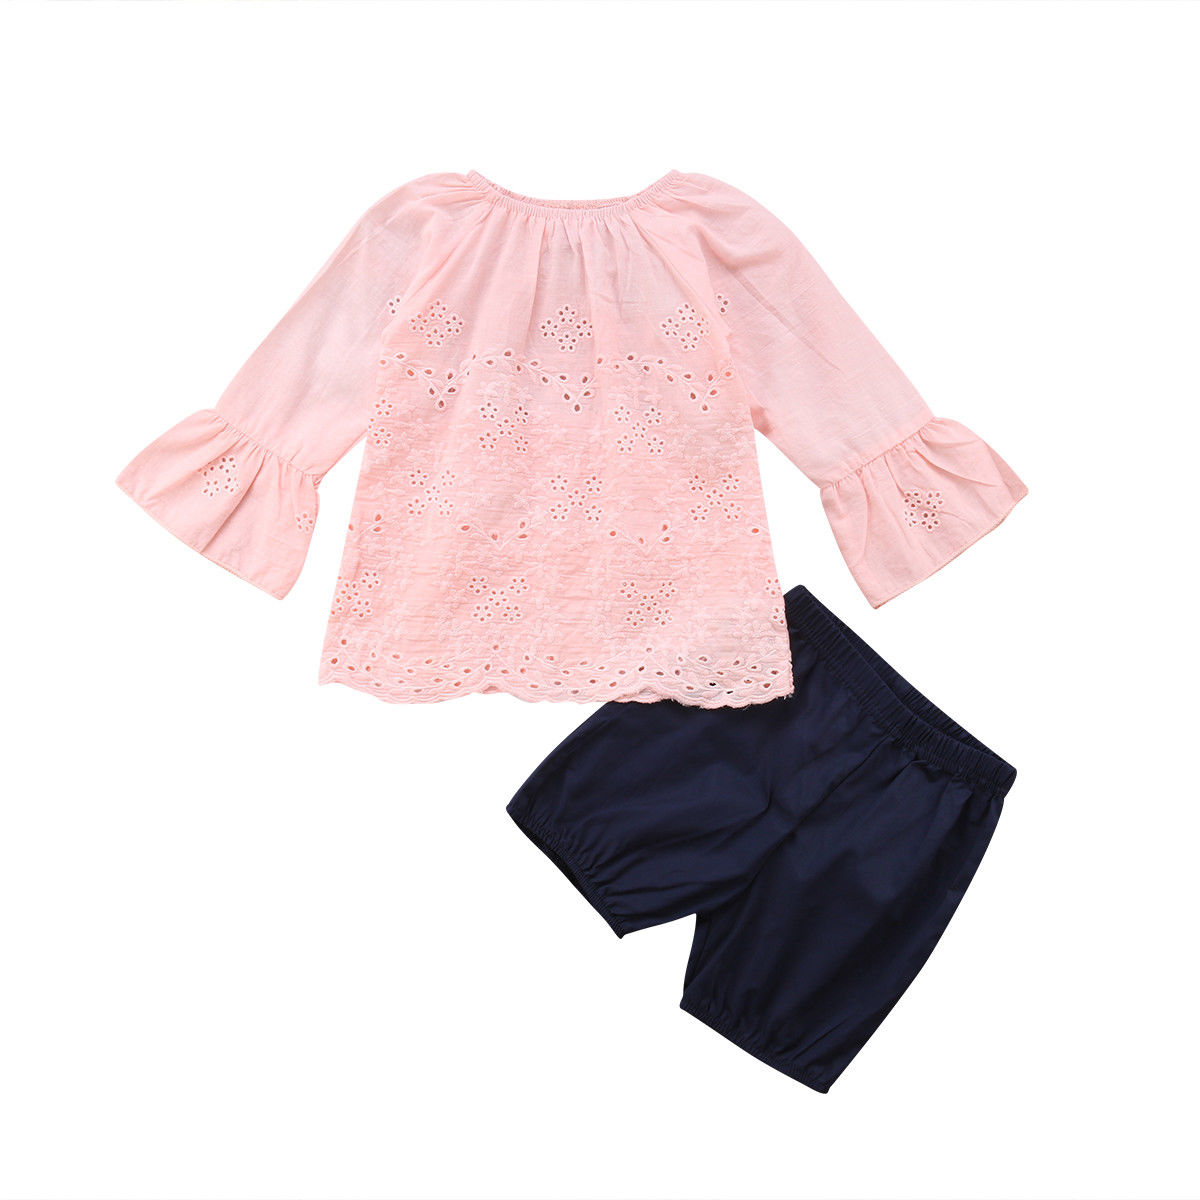 NEW Toddler Girls 2 Piece Set Size 2T Top Shirt Shorts Outfit Tunic Pink Orange